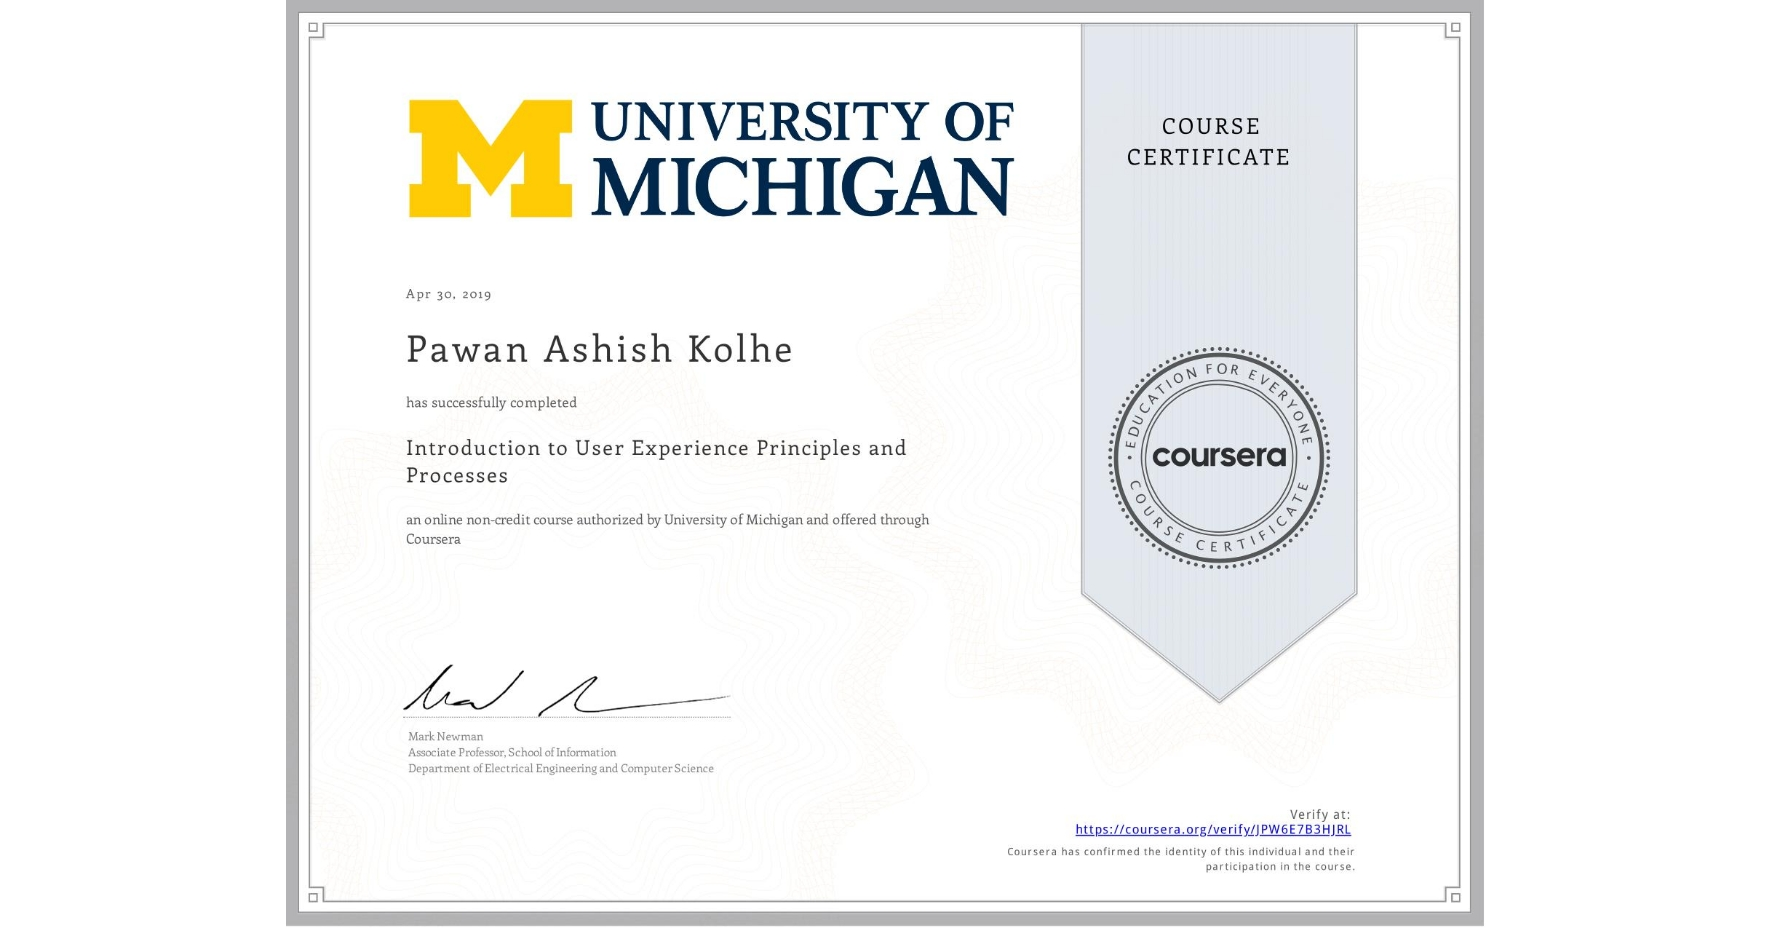 View certificate for Pawan Ashish Kolhe, Introduction to User Experience Principles and Processes, an online non-credit course authorized by University of Michigan and offered through Coursera